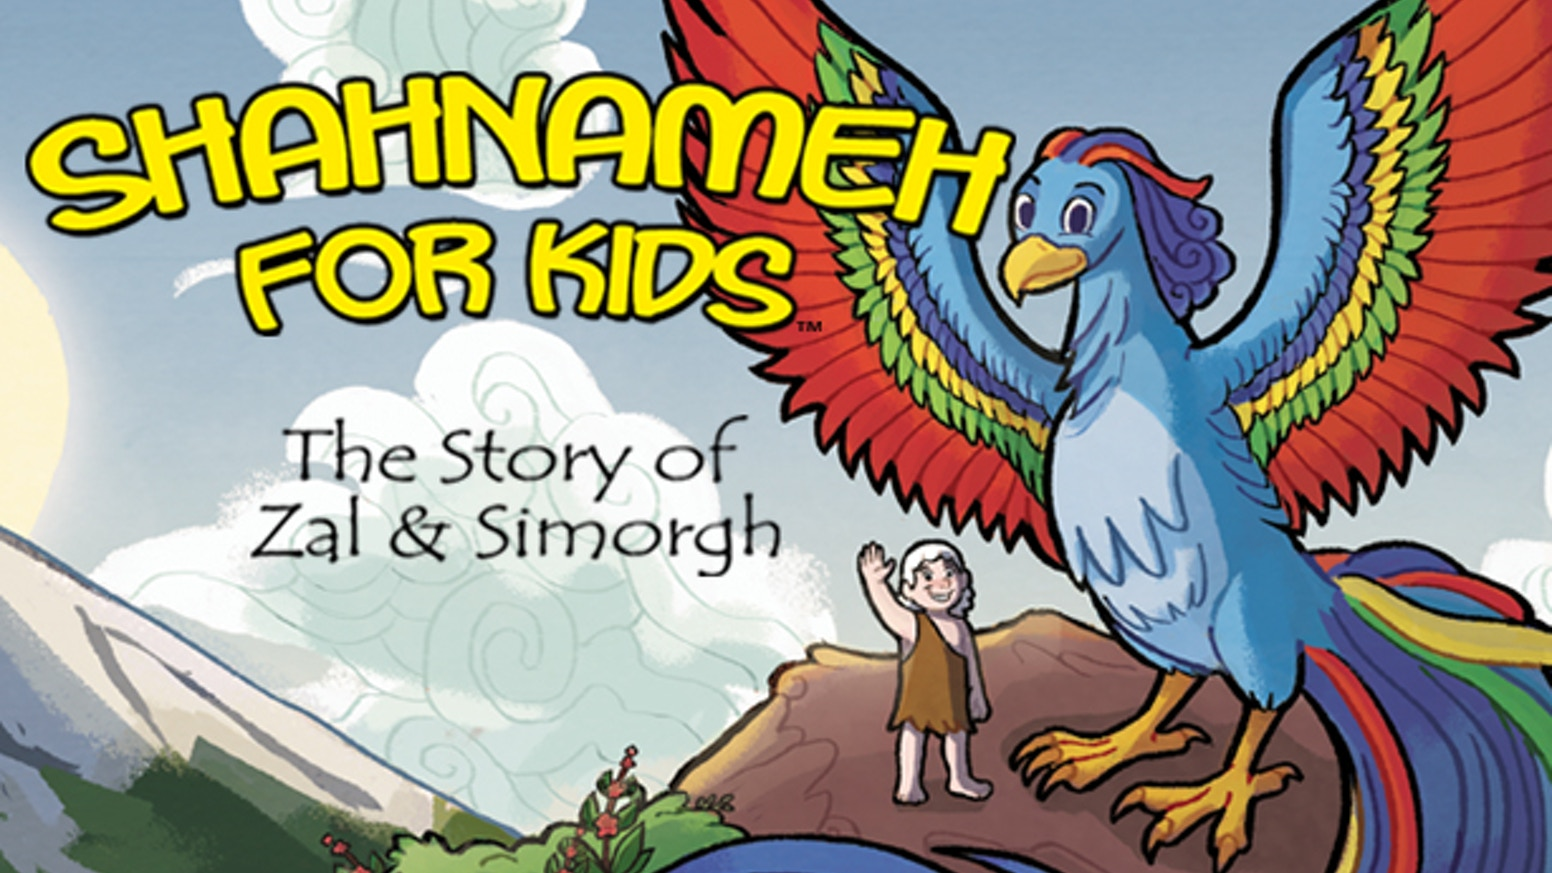 An illustrated picture book for kids based on the ancient Iranian classic tale of Zal & Simorgh from Ferdowsi's Shahnameh.